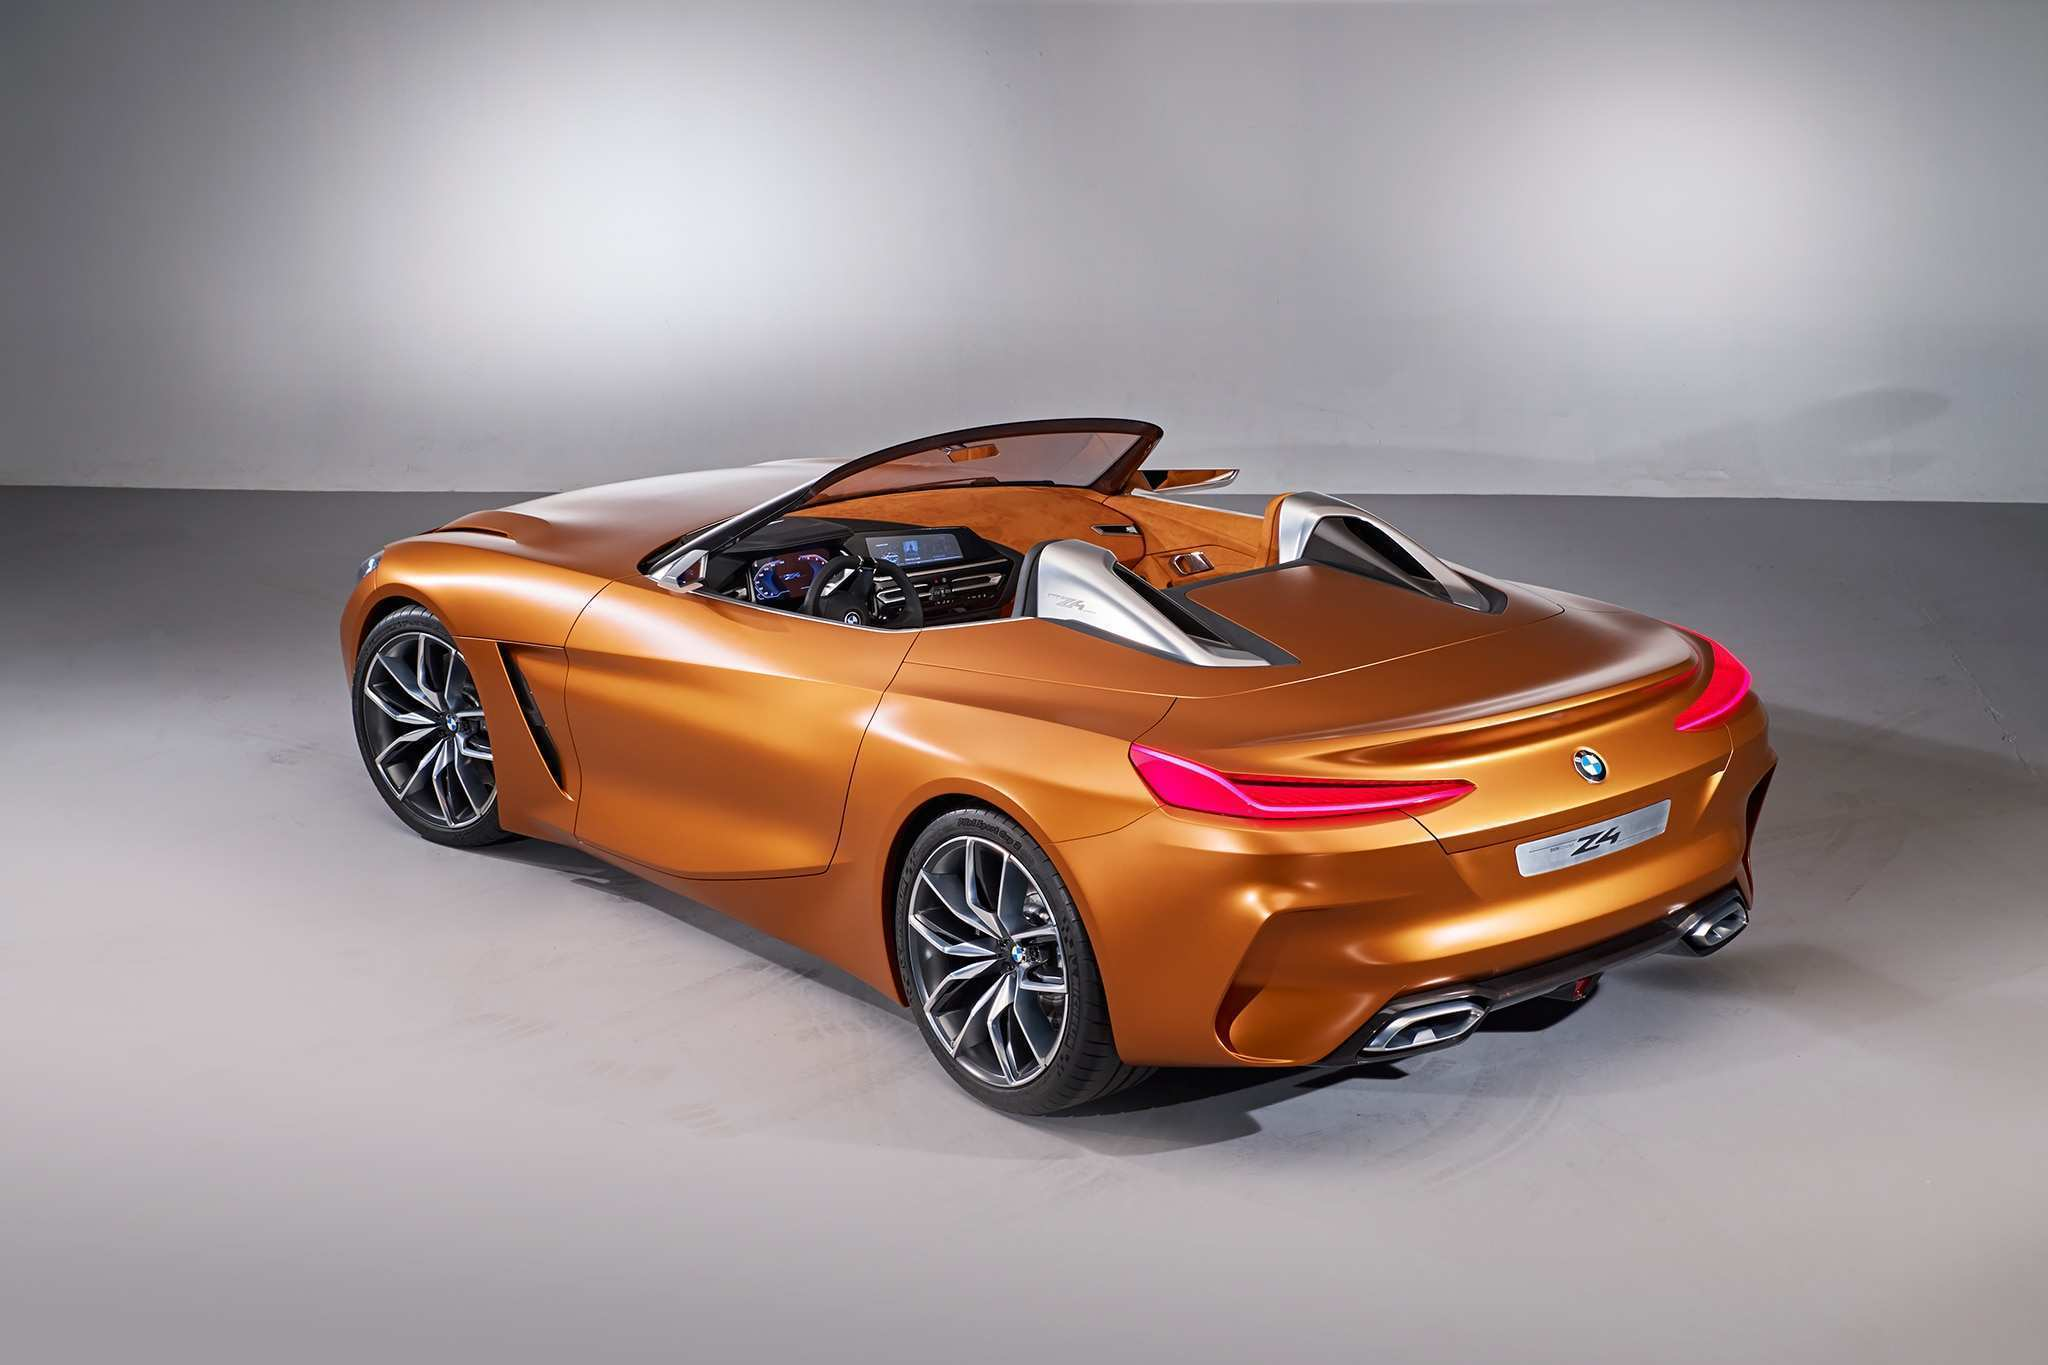 28 Gallery of 2019 Bmw Z4 Concept Overview with 2019 Bmw Z4 Concept